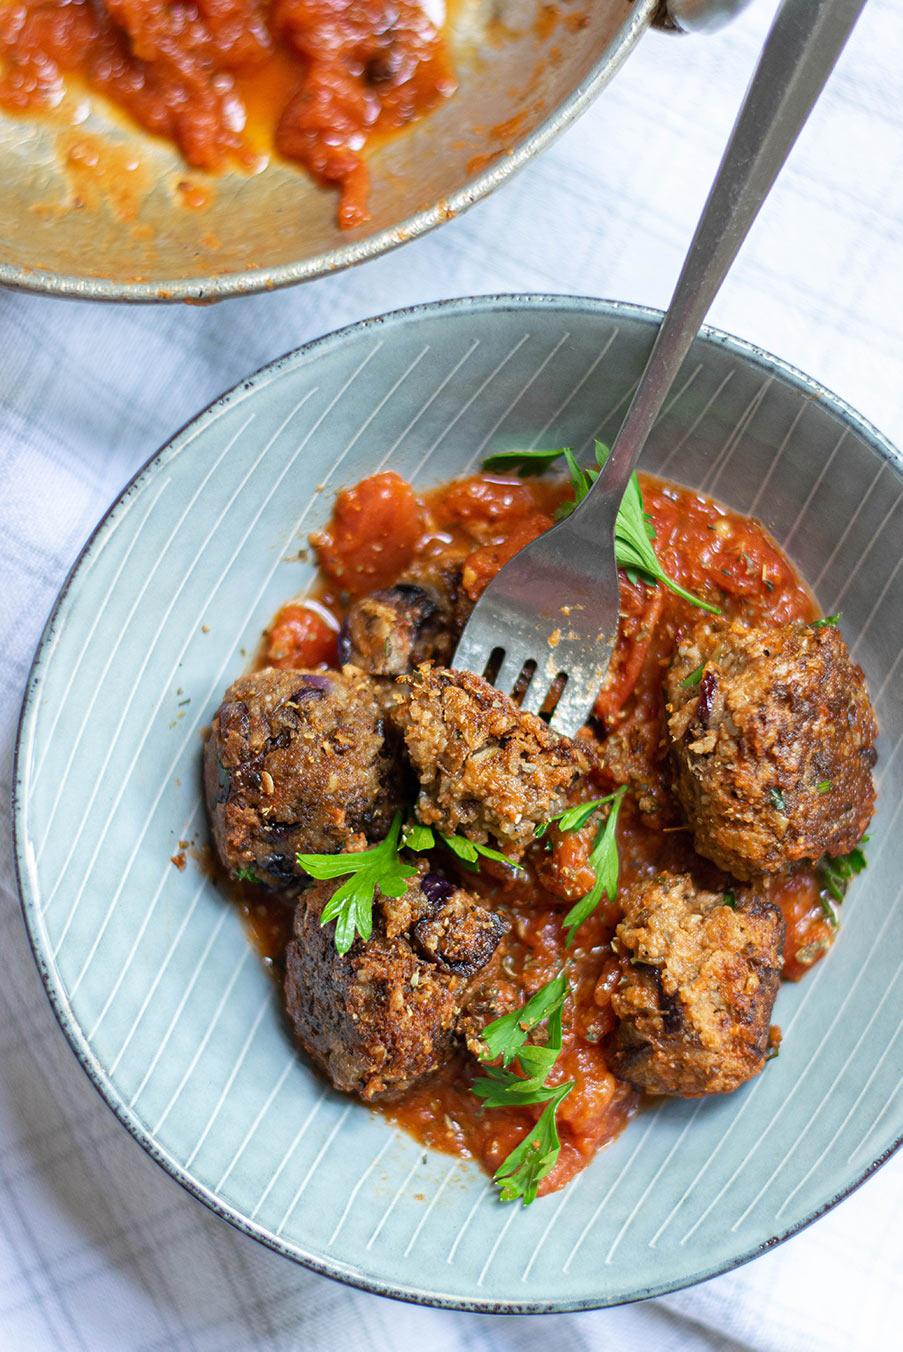 five lentil vegetarian meatballs with marinara sauce and parsley in a light blue bowl with a fork.